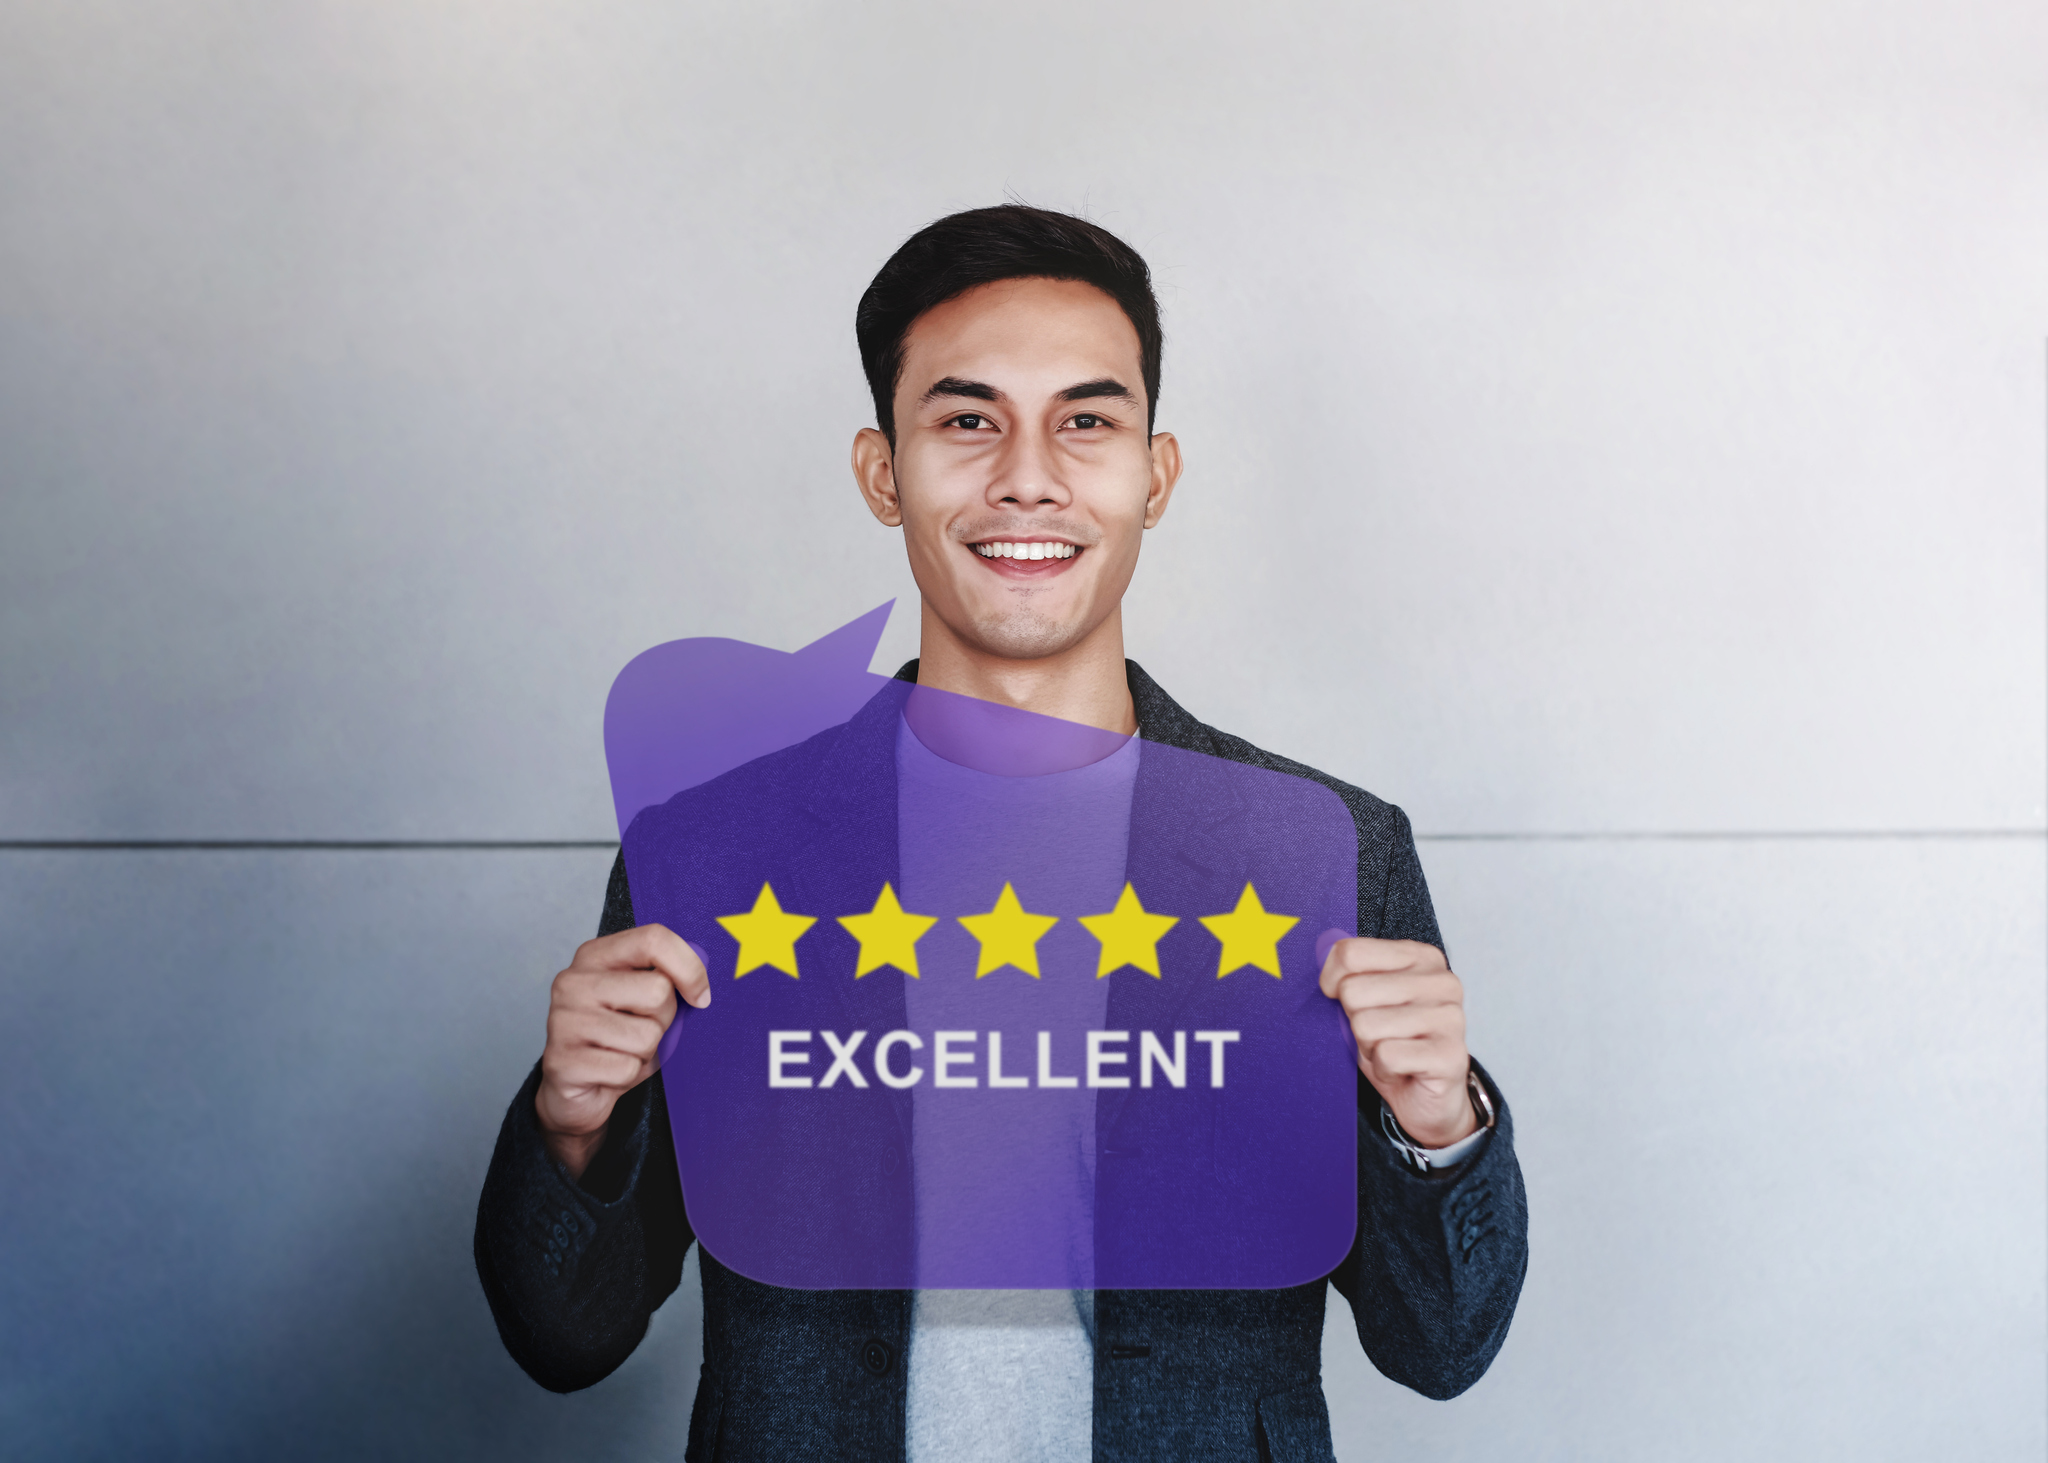 Customer Experiences Concept. Happy Client Showing Five Stars Rating and Positive Review on Speech Bubble Card. Client Satisfaction Surveys and Feedback